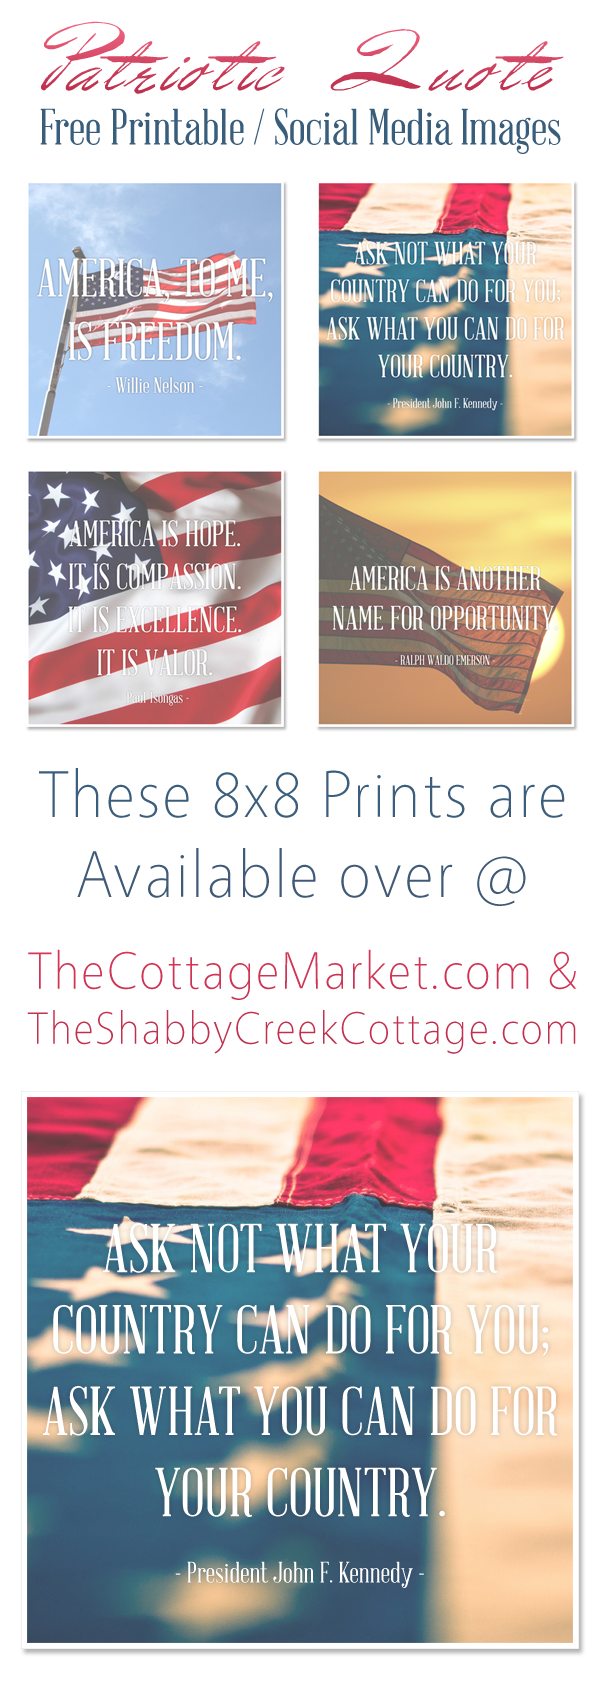 http://thecottagemarket.com/wp-content/uploads/2015/06/PatrioticQuote-Tower.png